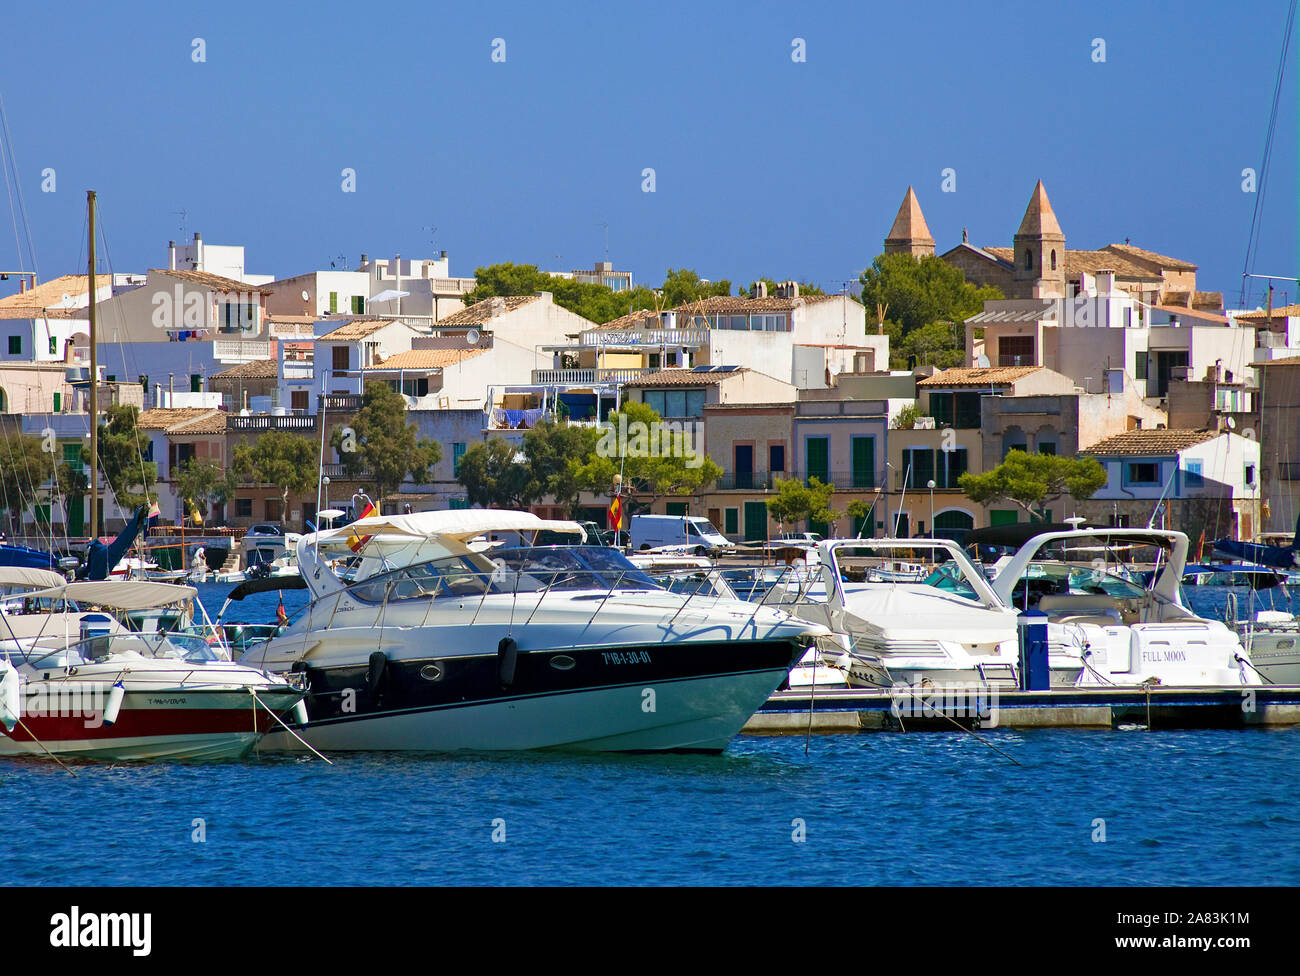 Boats at the harbour of Porto Colom, Mallorca, Balearic islands, Spain Stock Photo